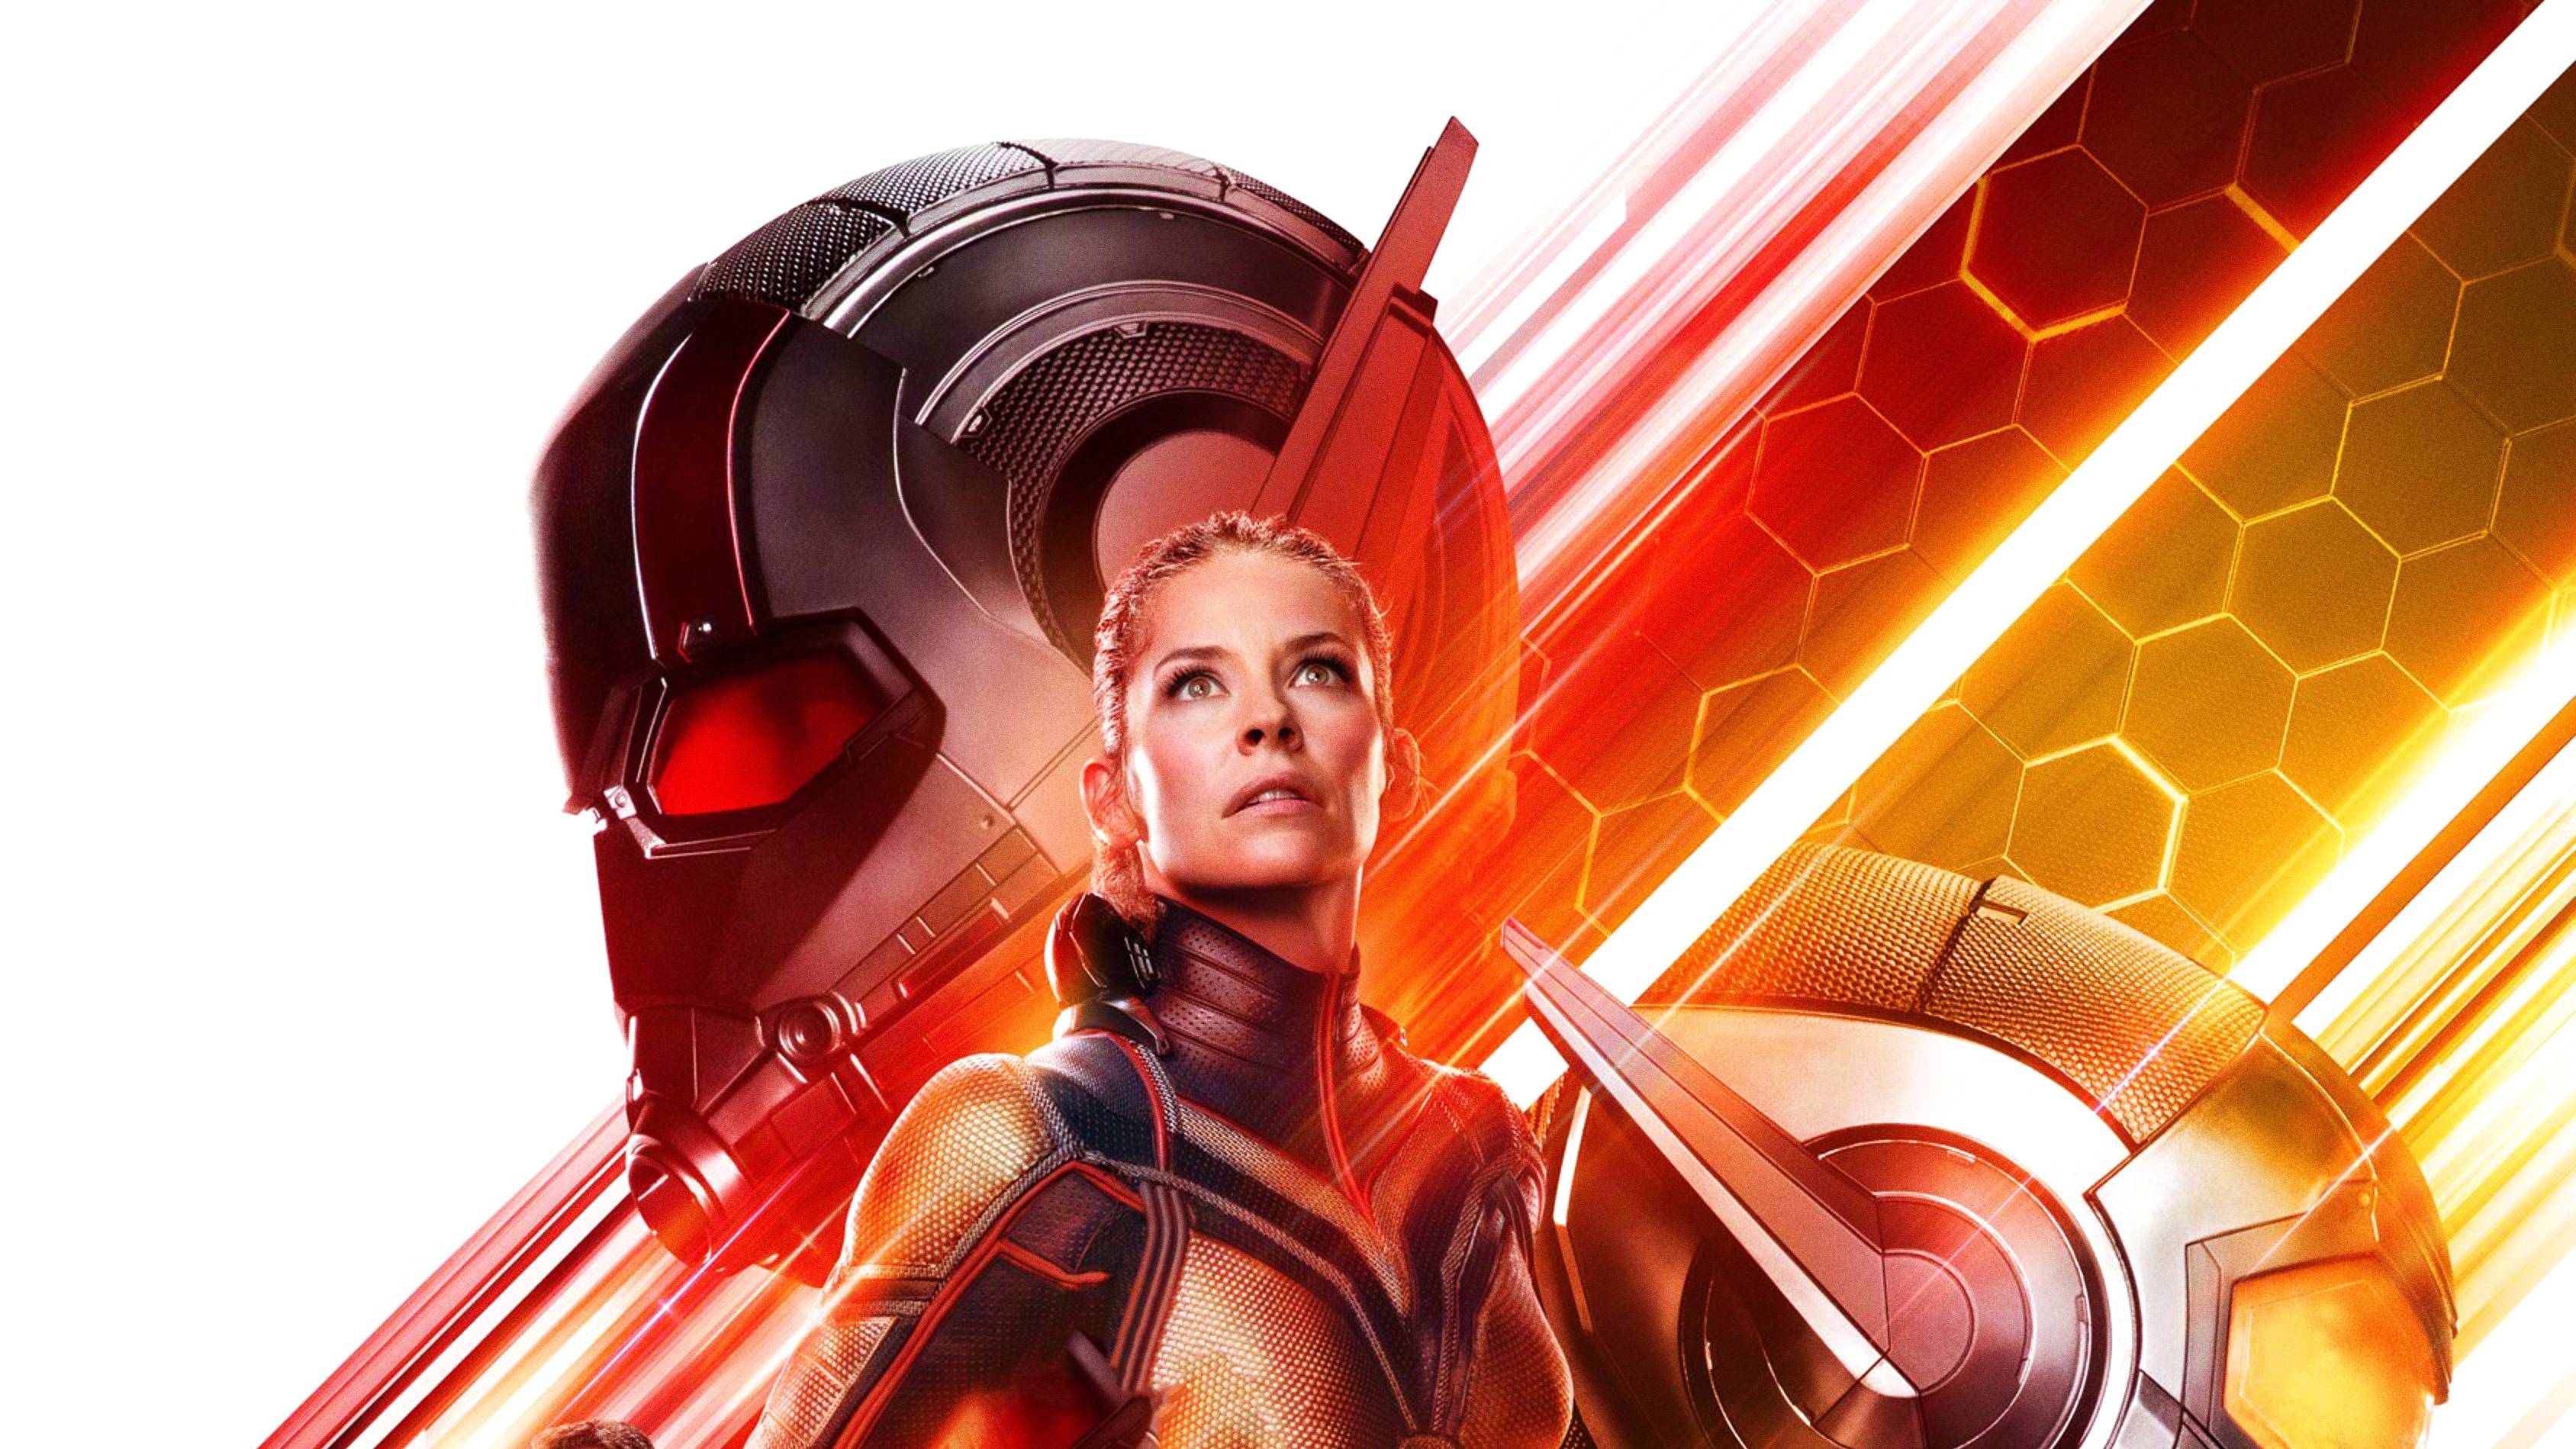 Ant Man Ant Man And The Wasp Evangeline Lilly Hope Pym Wasp Marvel Comics 3376x1899